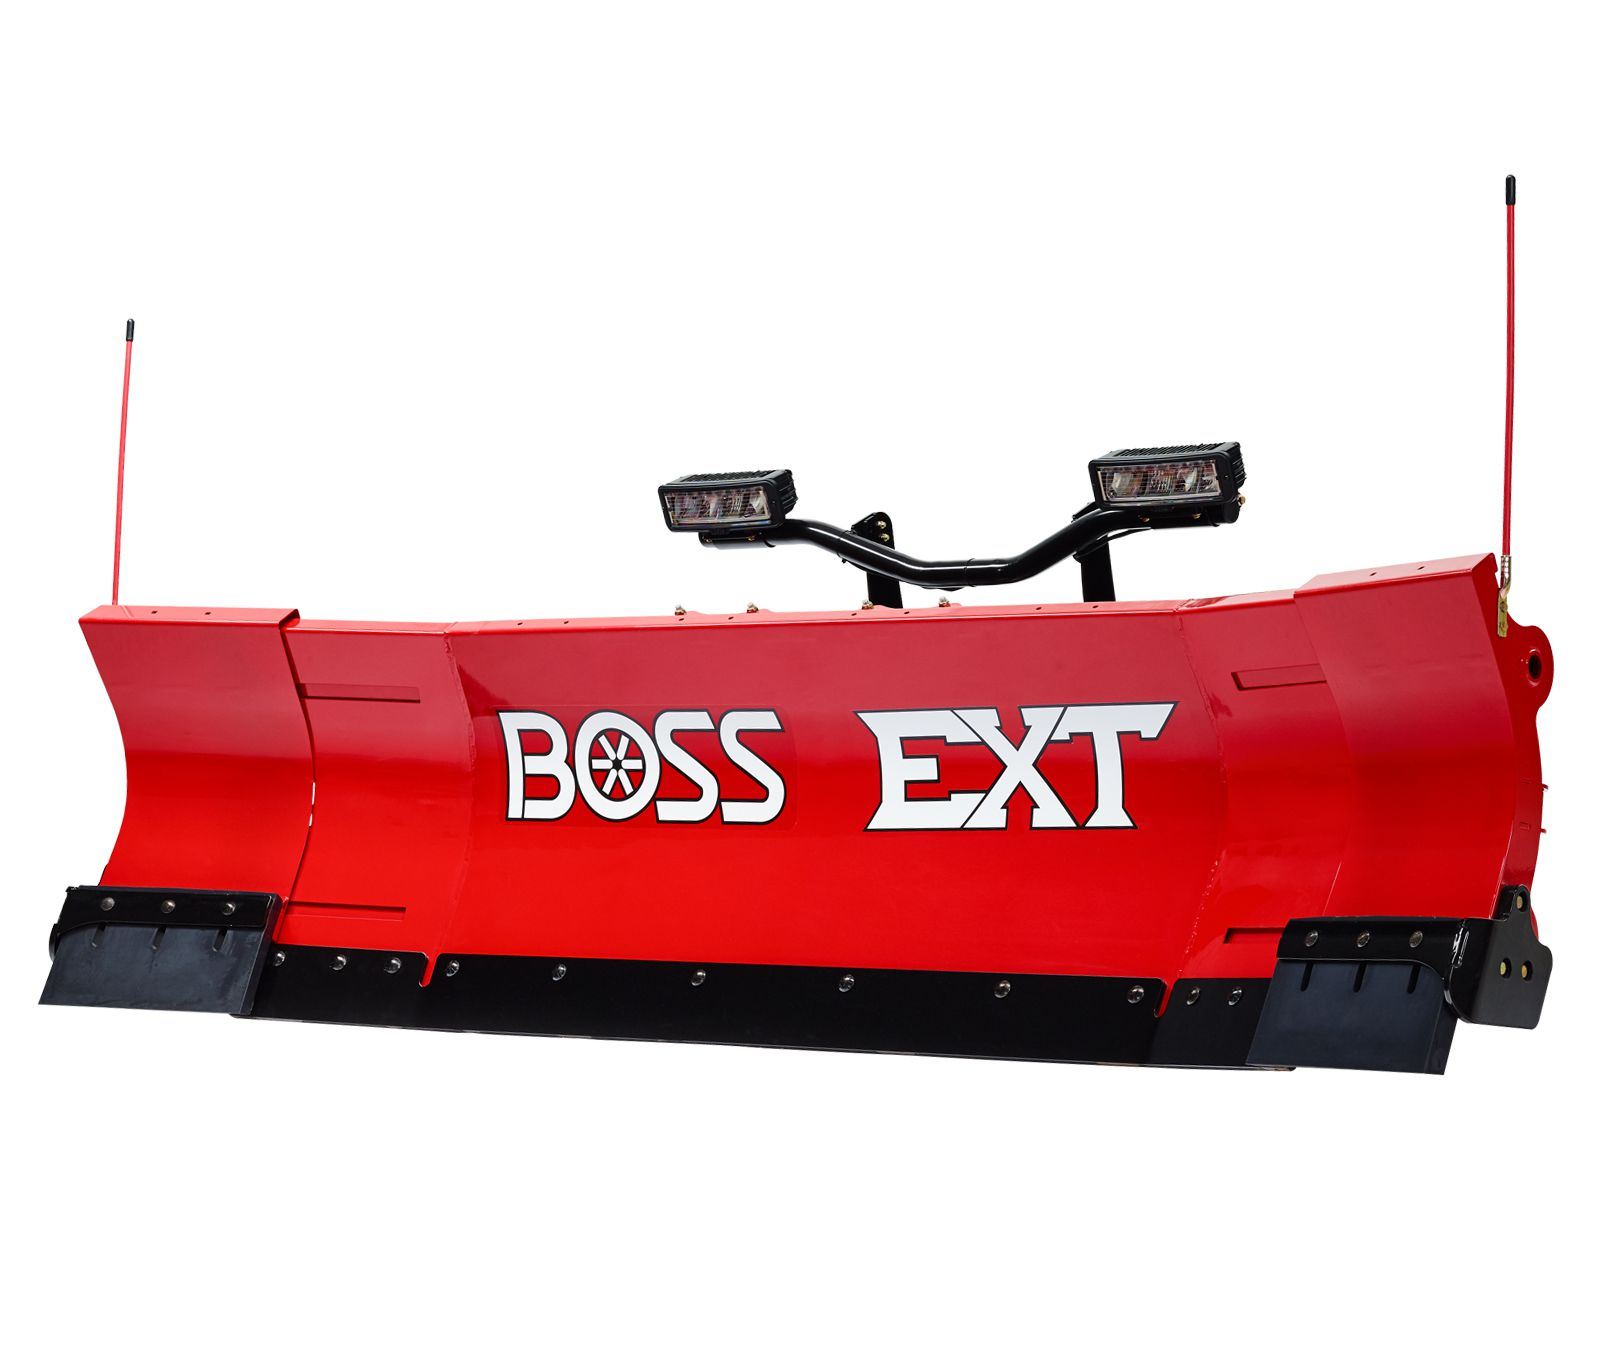 BOSS EXT Steel Plow